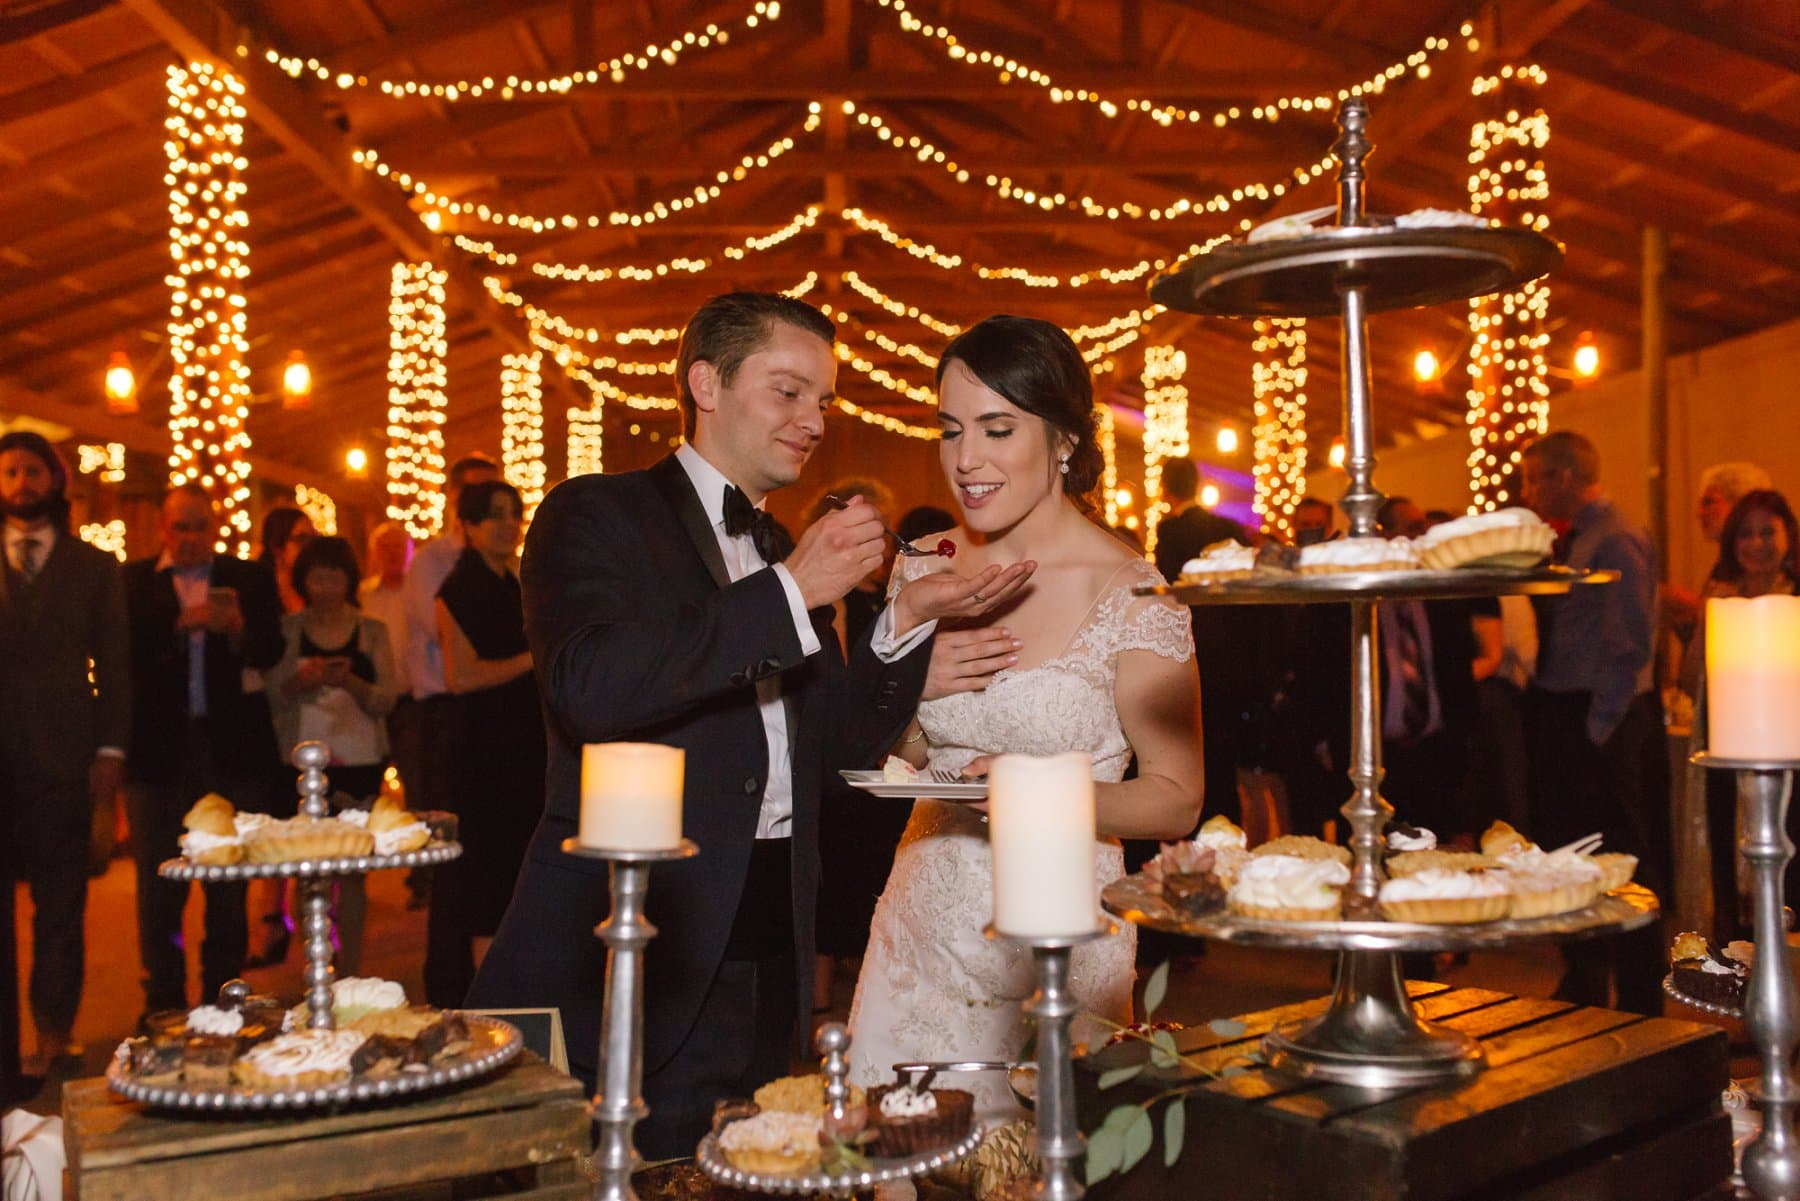 cutting wedding pie at Desert Foothills barn wedding venue